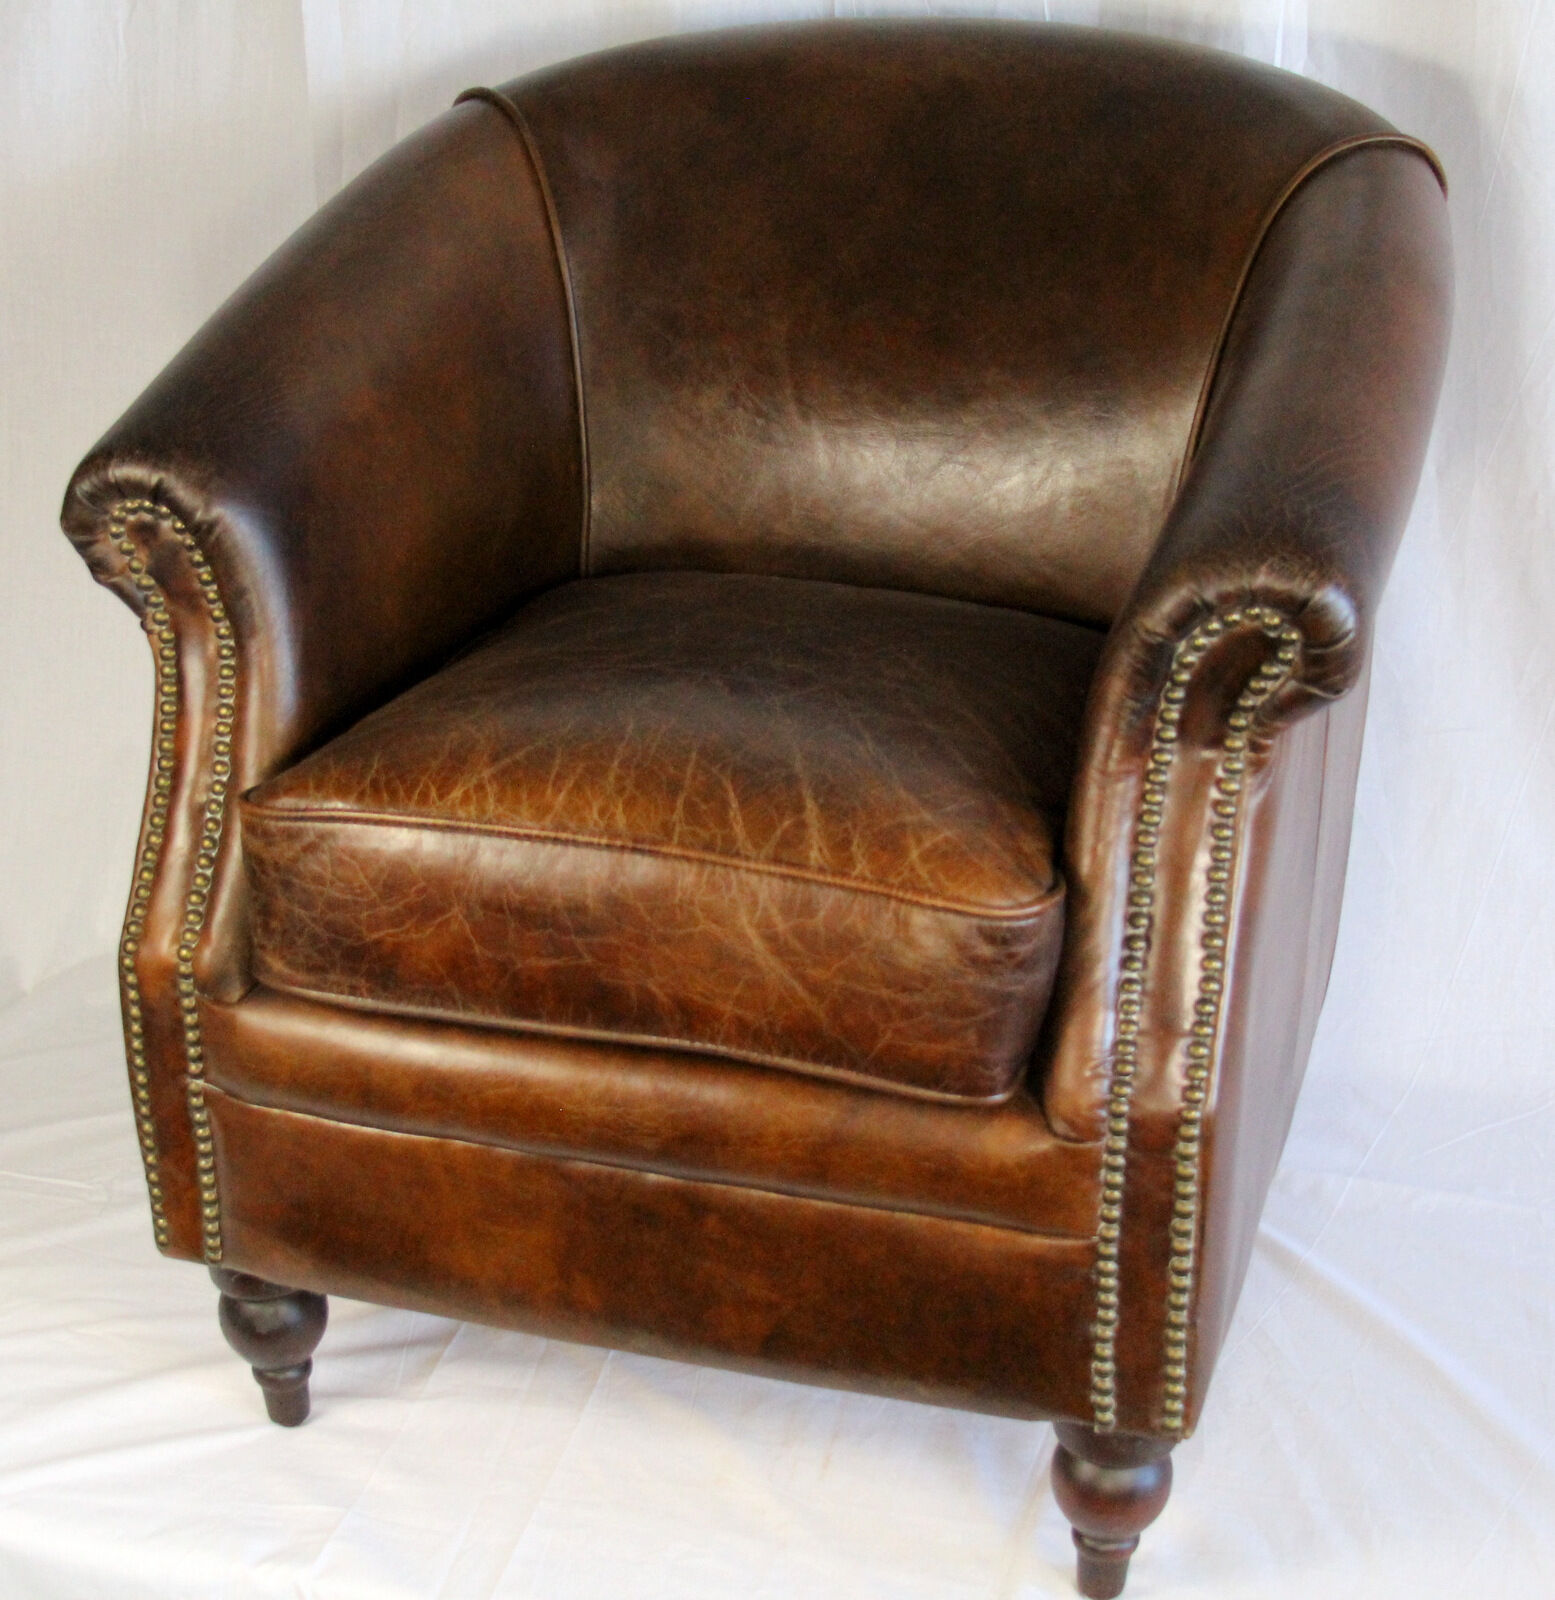 Comfortable Compact Chair 27 034 Wide Club Arm Chair Vintage Brown Cigar Italian